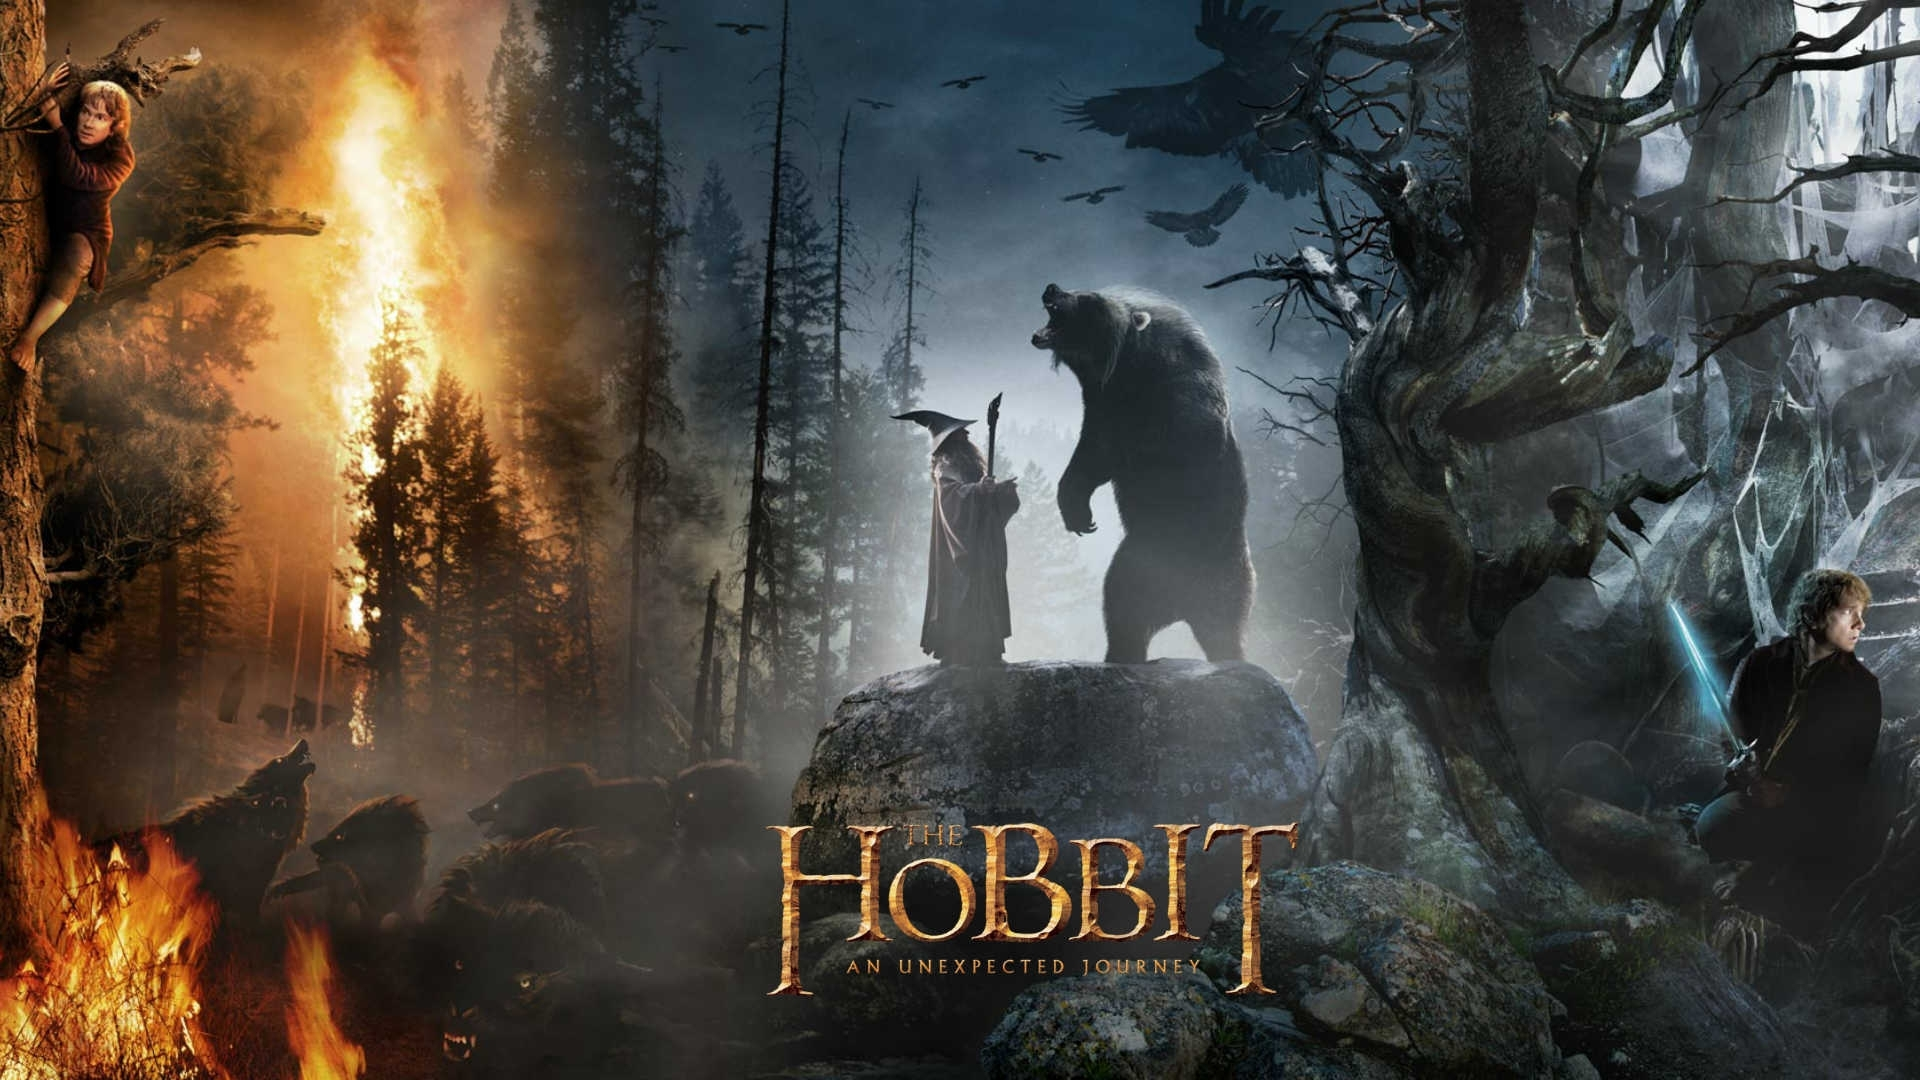 the hobbit 2012 movie wallpapers | wallpapers hd